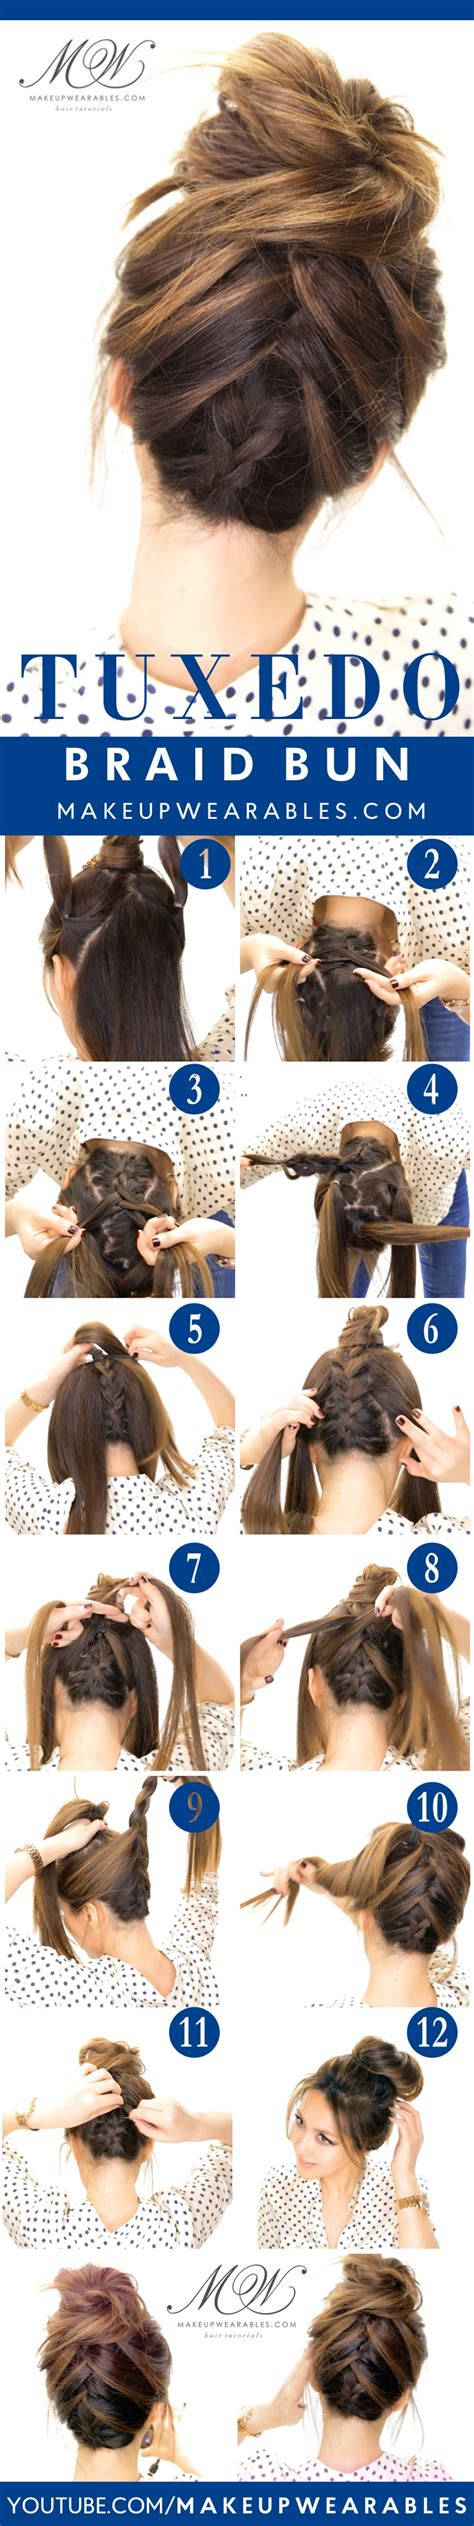 Pretty Hairstyles For School Step By Step by How To Do The Amazing Tuxedo Braid Bun Hairstyle